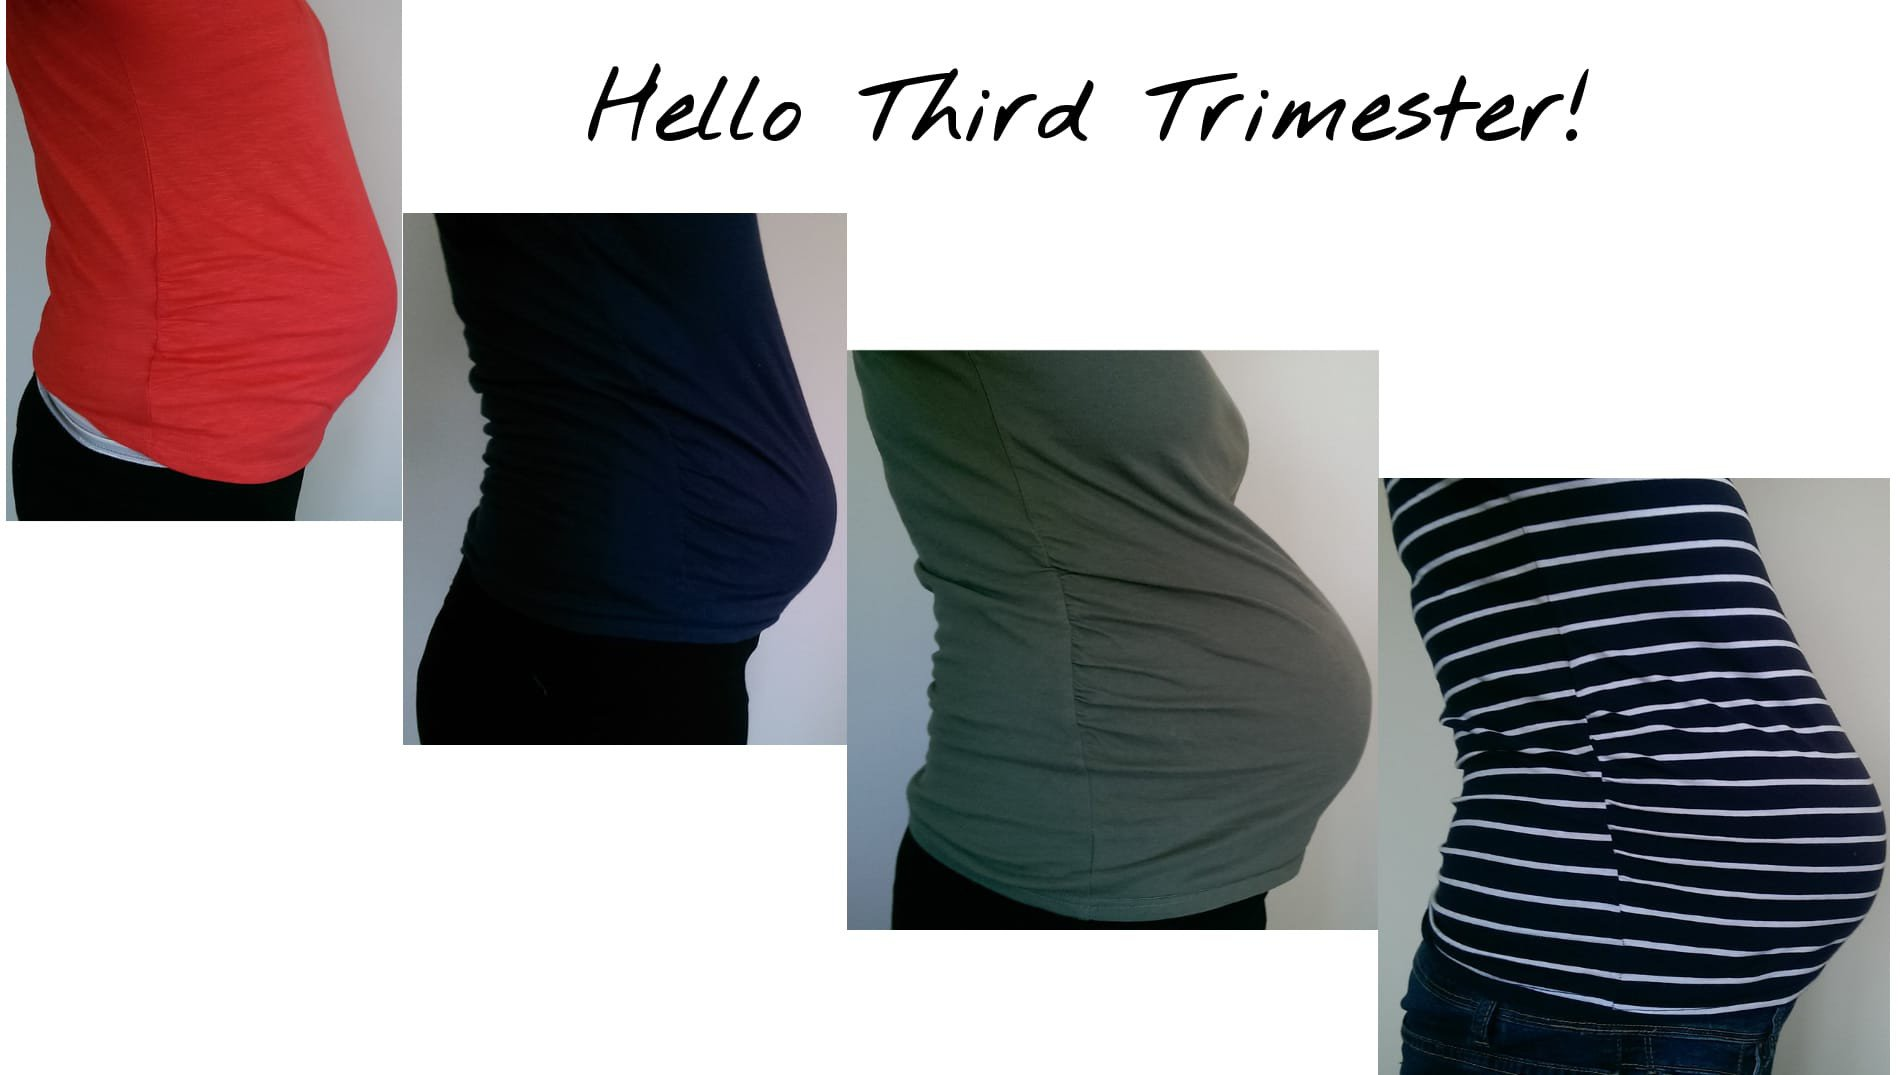 32 Weeks – Hello Third Trimester (and pelvic floor)